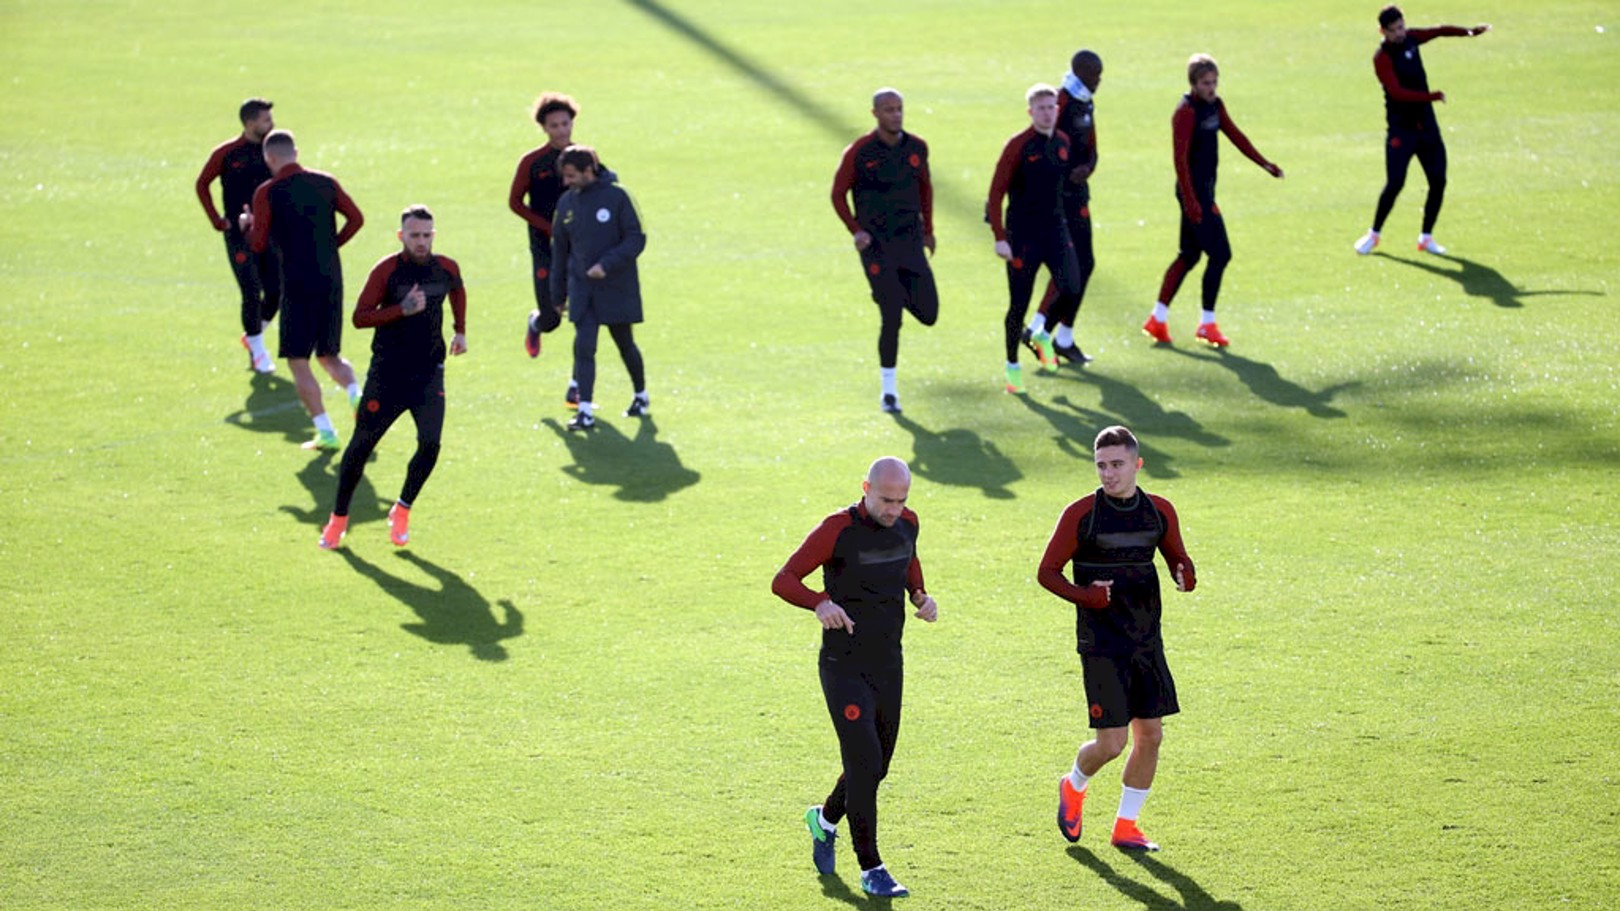 WARM UP: The lads get ready for today's session.